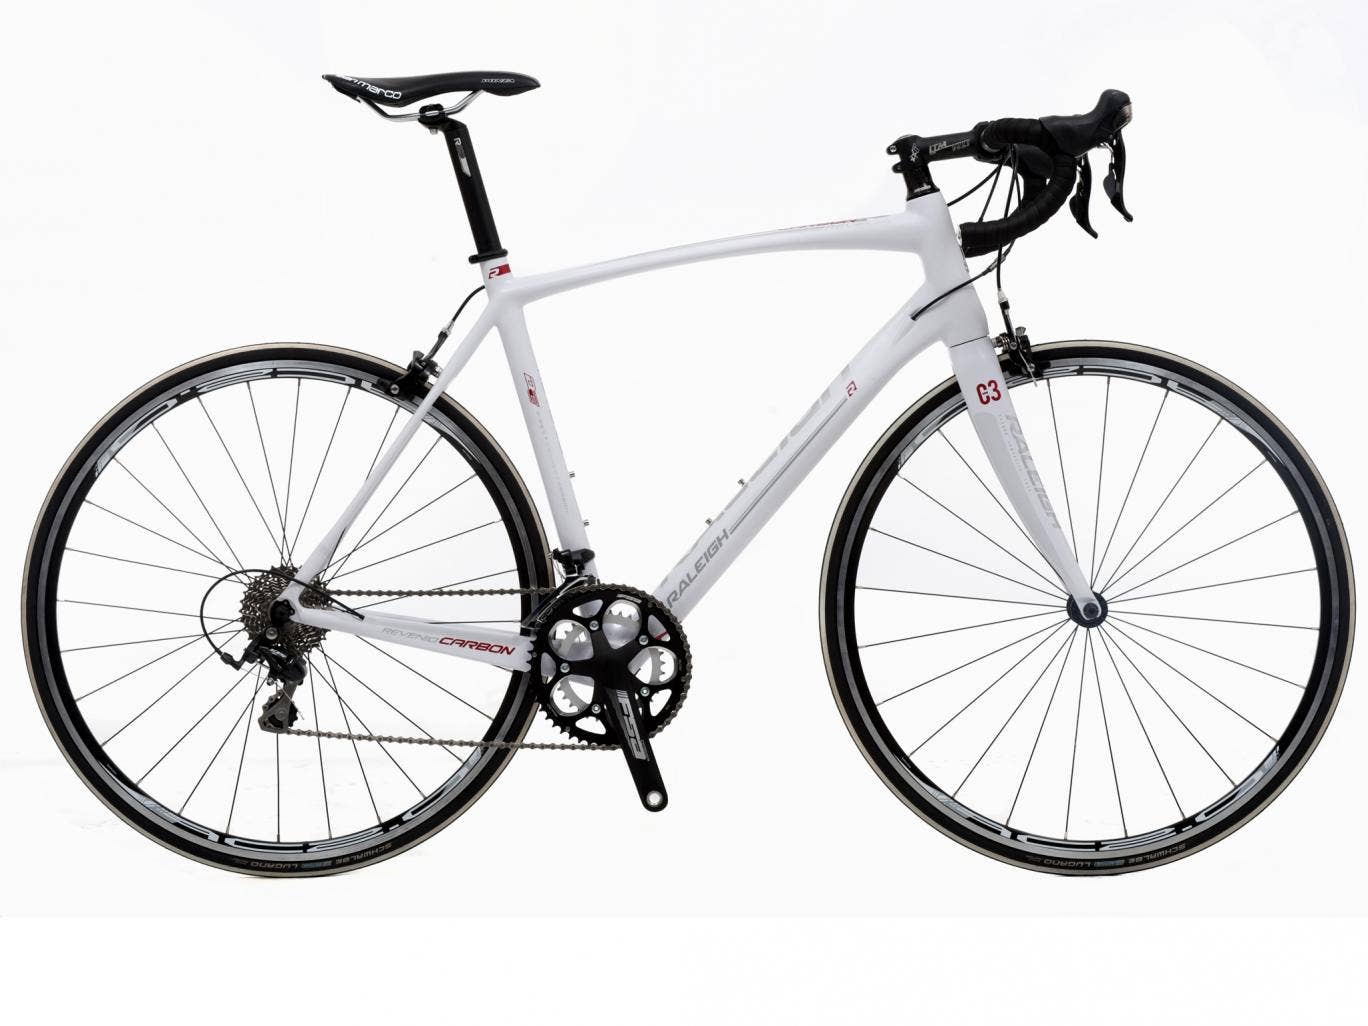 The new Revenio Carbon racer from Raleigh